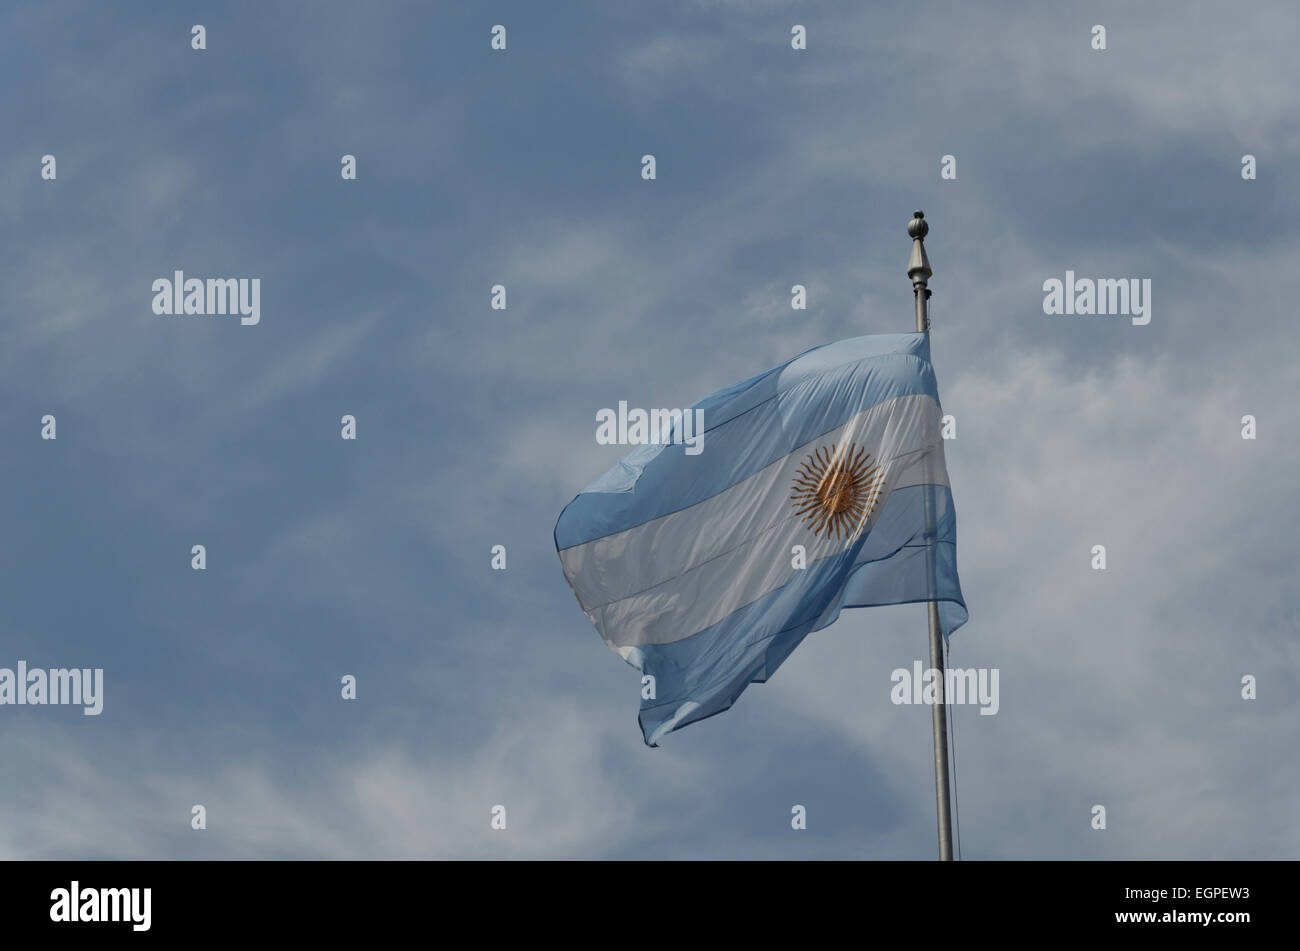 The flag of Argentina flying flapping in the wind on a flagpole against a blue sky - Stock Image